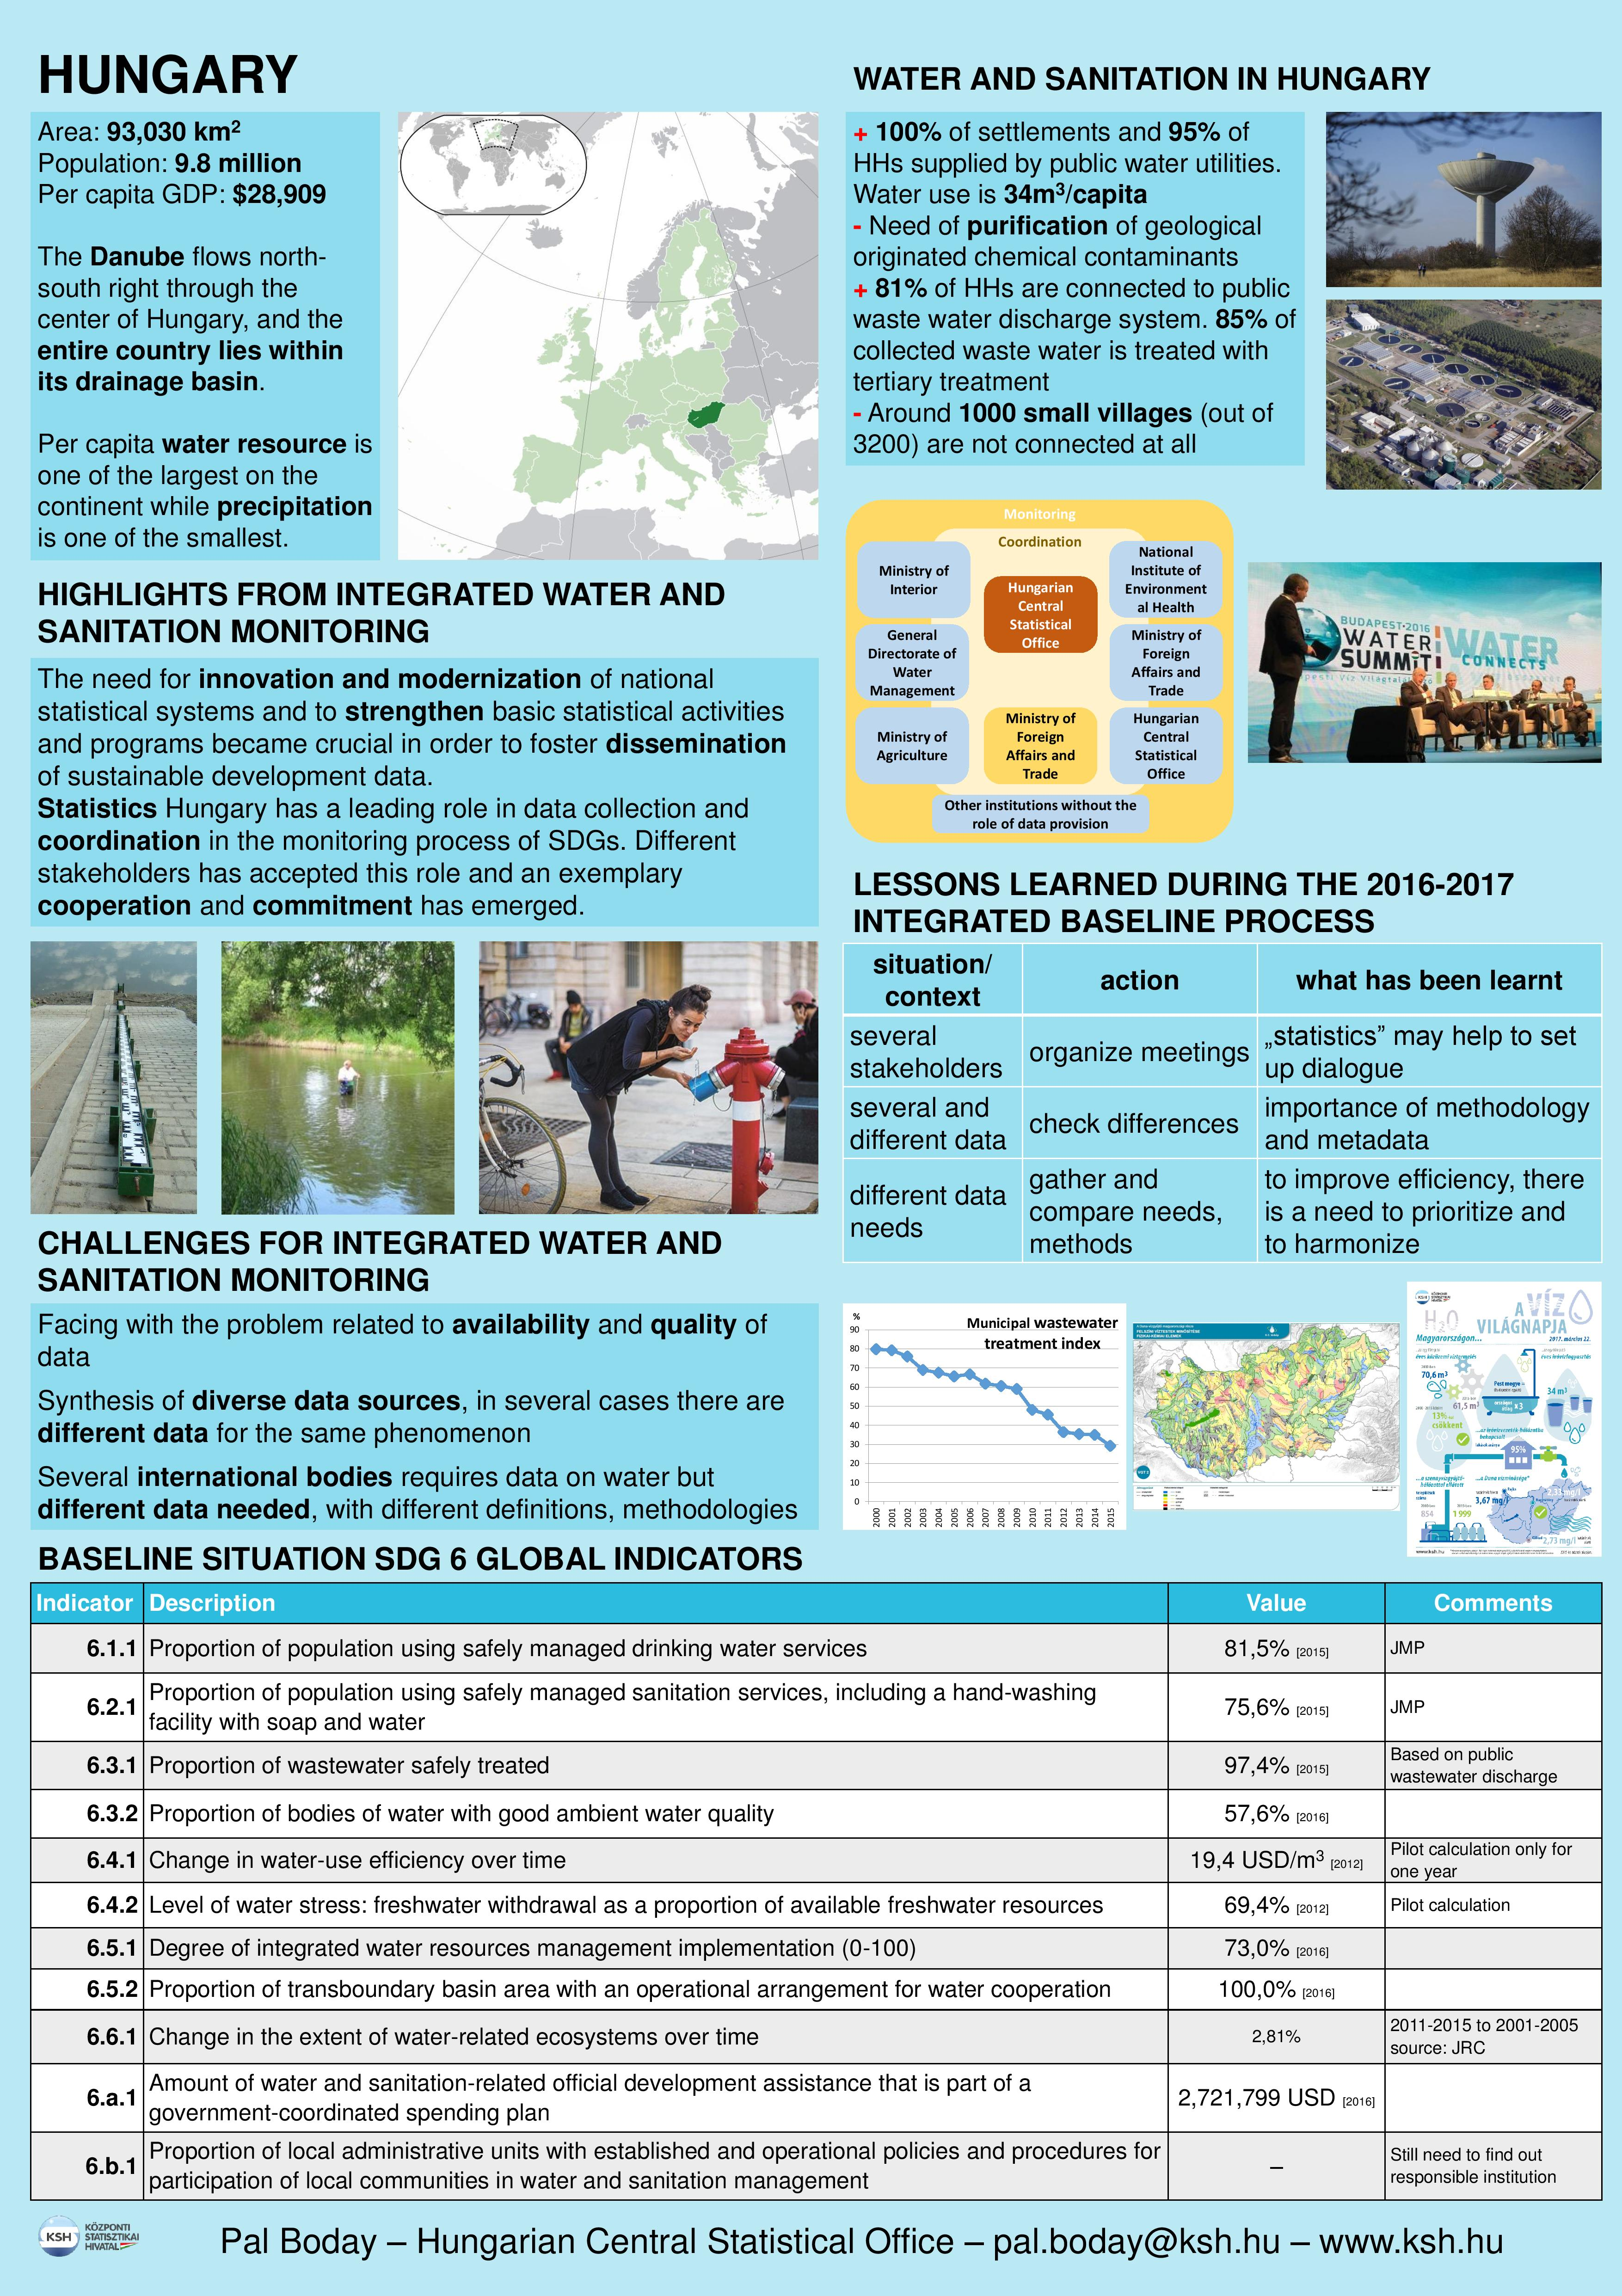 Water and saniation monitoring in Hungary at a glance